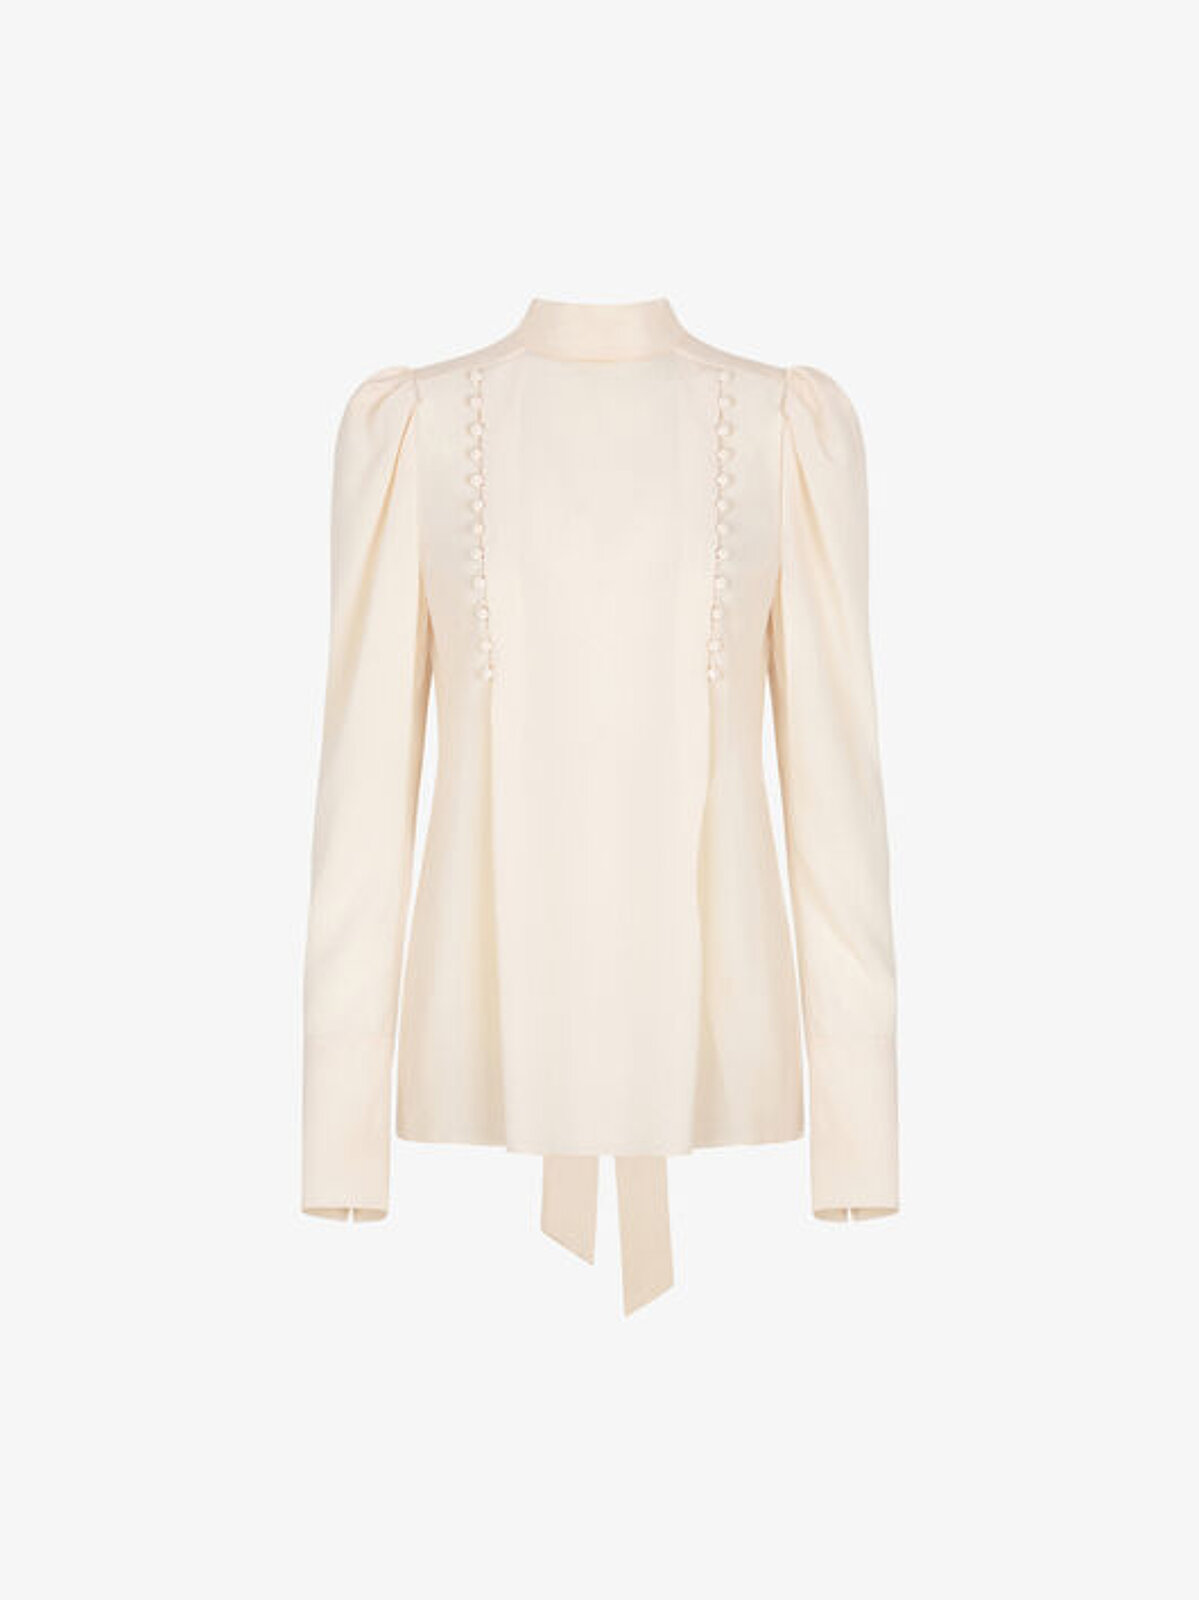 Blusa Di Seta Con Bottoni Decorativi - Givenchy